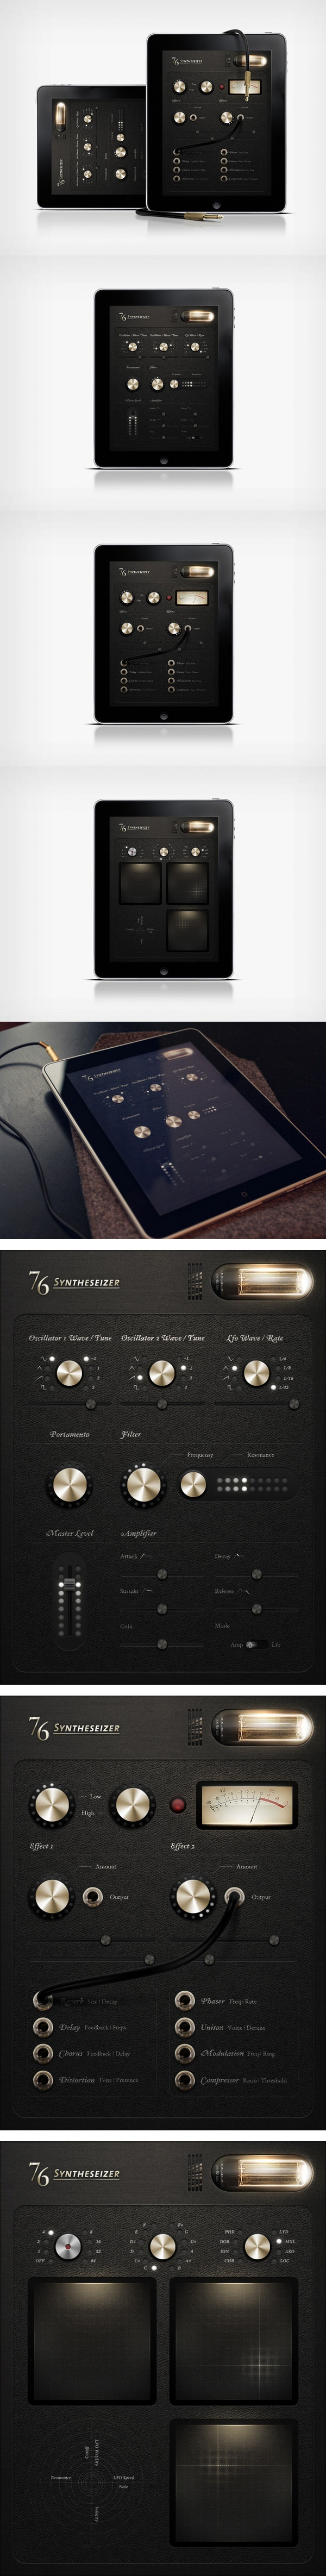 76 Synthesizer Concept by Jonas Eriksson, via Behance